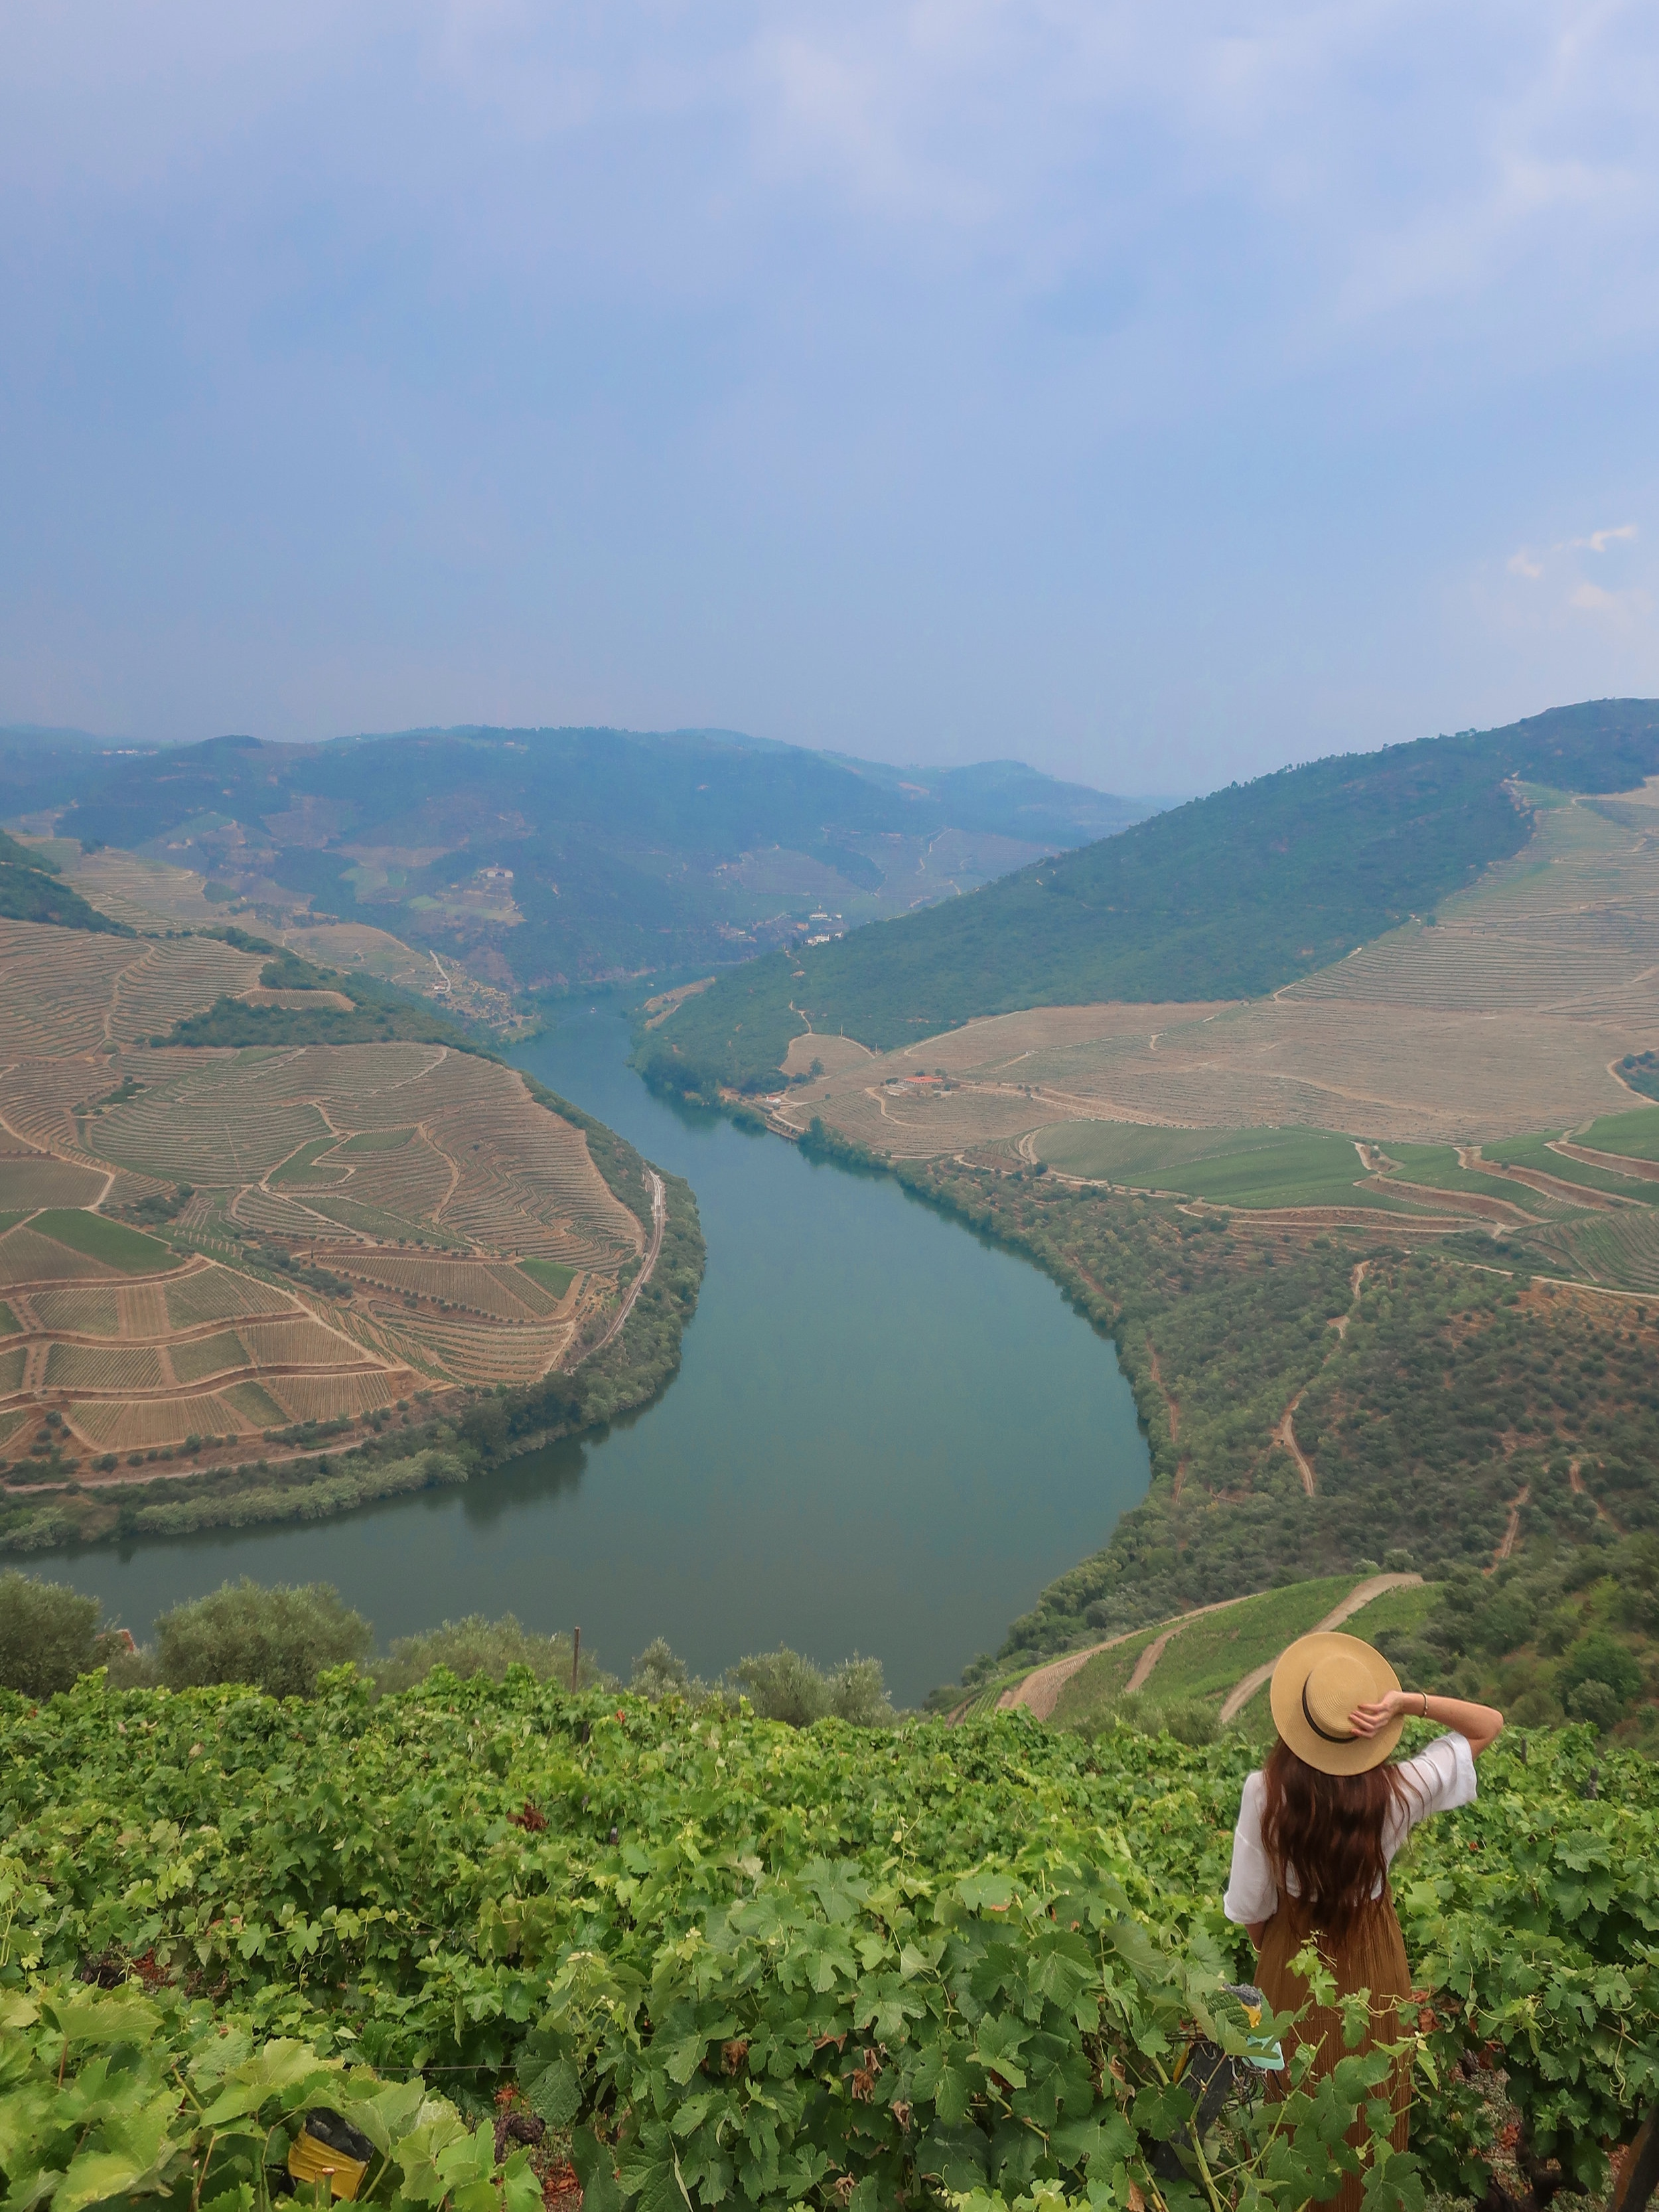 wine tasting and tour at quinta das carvalhas in Portugal's douro Valley